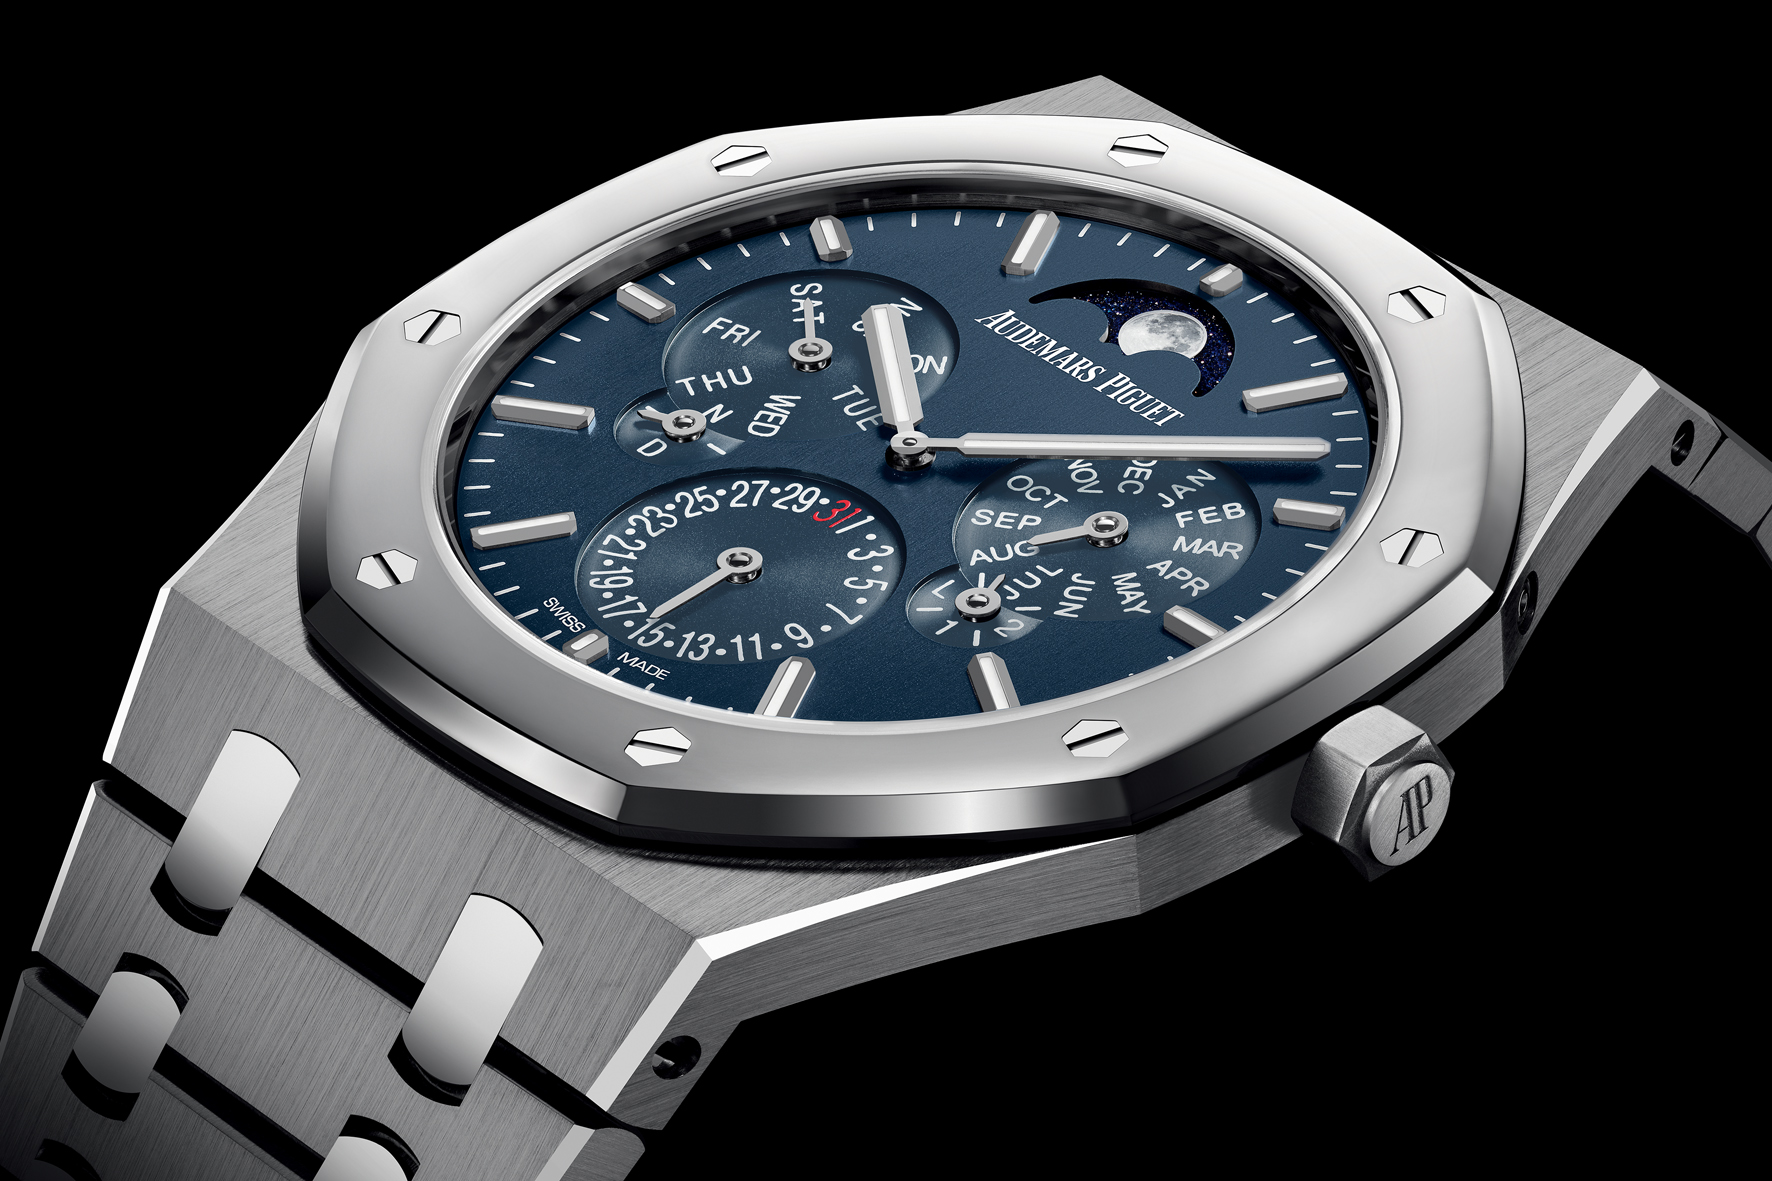 Audemars_Piguet_Royal_Oak_Perpetual_Calendar_Ultra_Thin